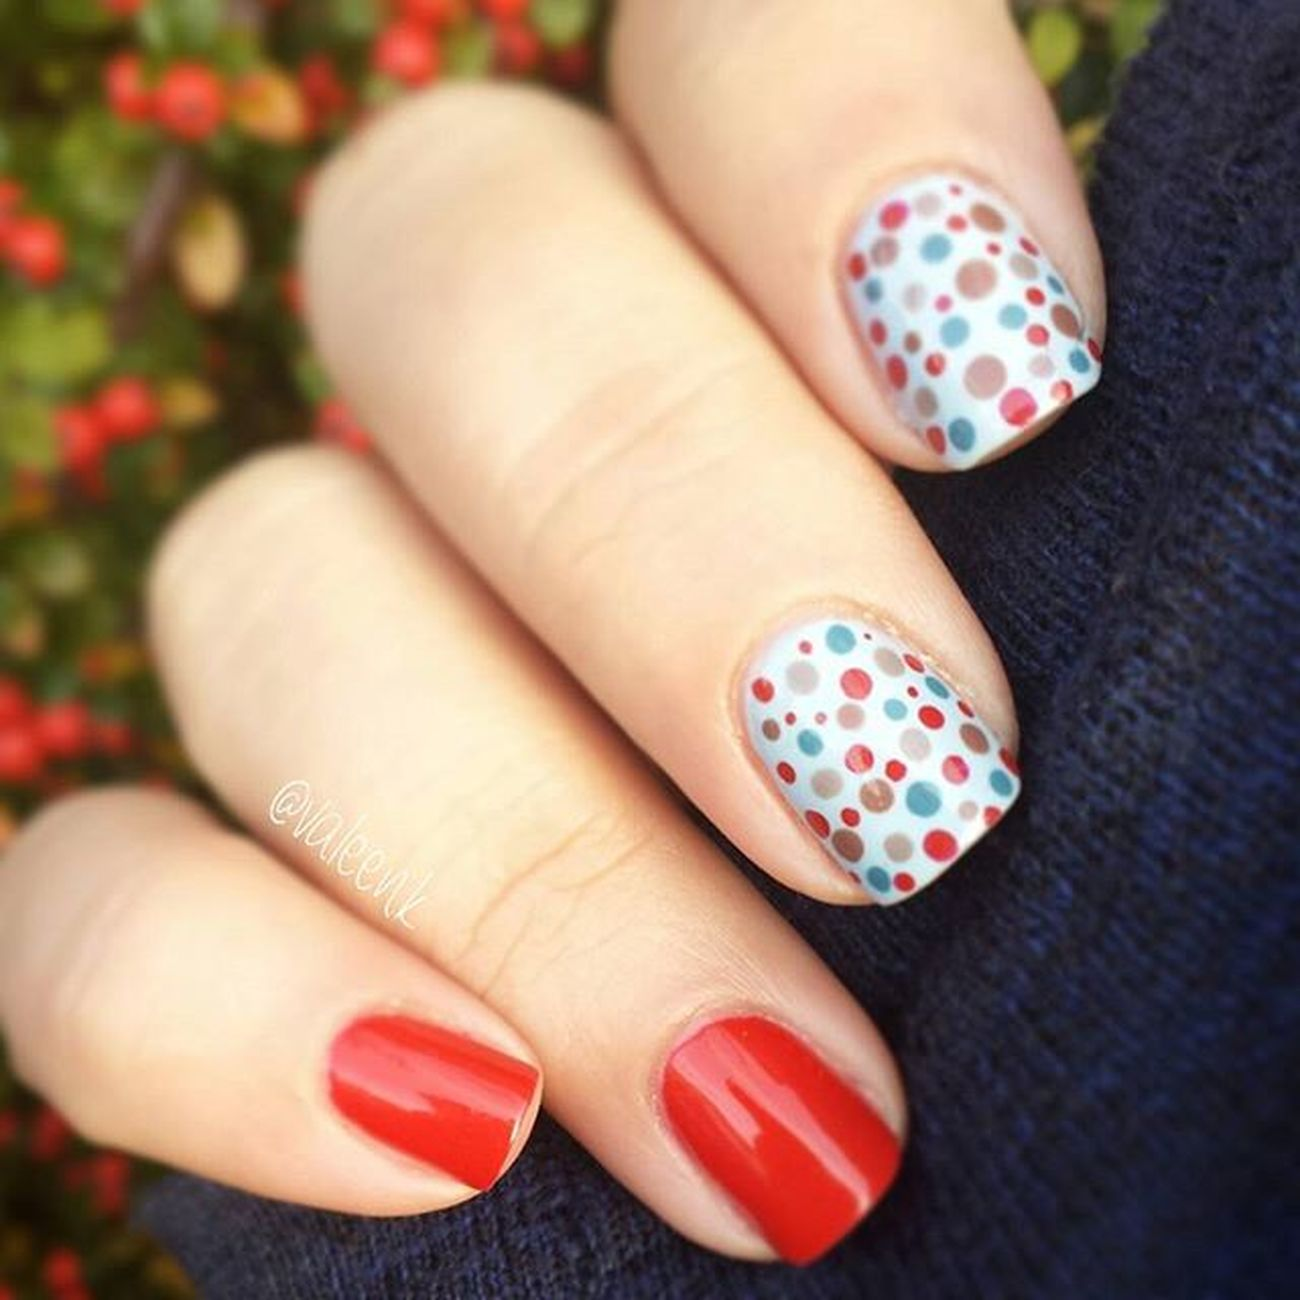 🔴🔵⚪ I💅essie Essie Essieaddict Essieaddicted Essiedeutschland Nails2inspire Lovenails Essiepolish ReallyRed Meettheparents Nailsfromgermany @nailsfromgermany Chinchilly Nailsofinstagram Nails Nailartaddict Manicure Nailpolish Nailart  Nailporn Dots Nageldesign Naildesign Naildesigns маникюр  Nailjunkie nailpolishaddict polishaholic nailpolishjunkie pruesgang essienista 💅